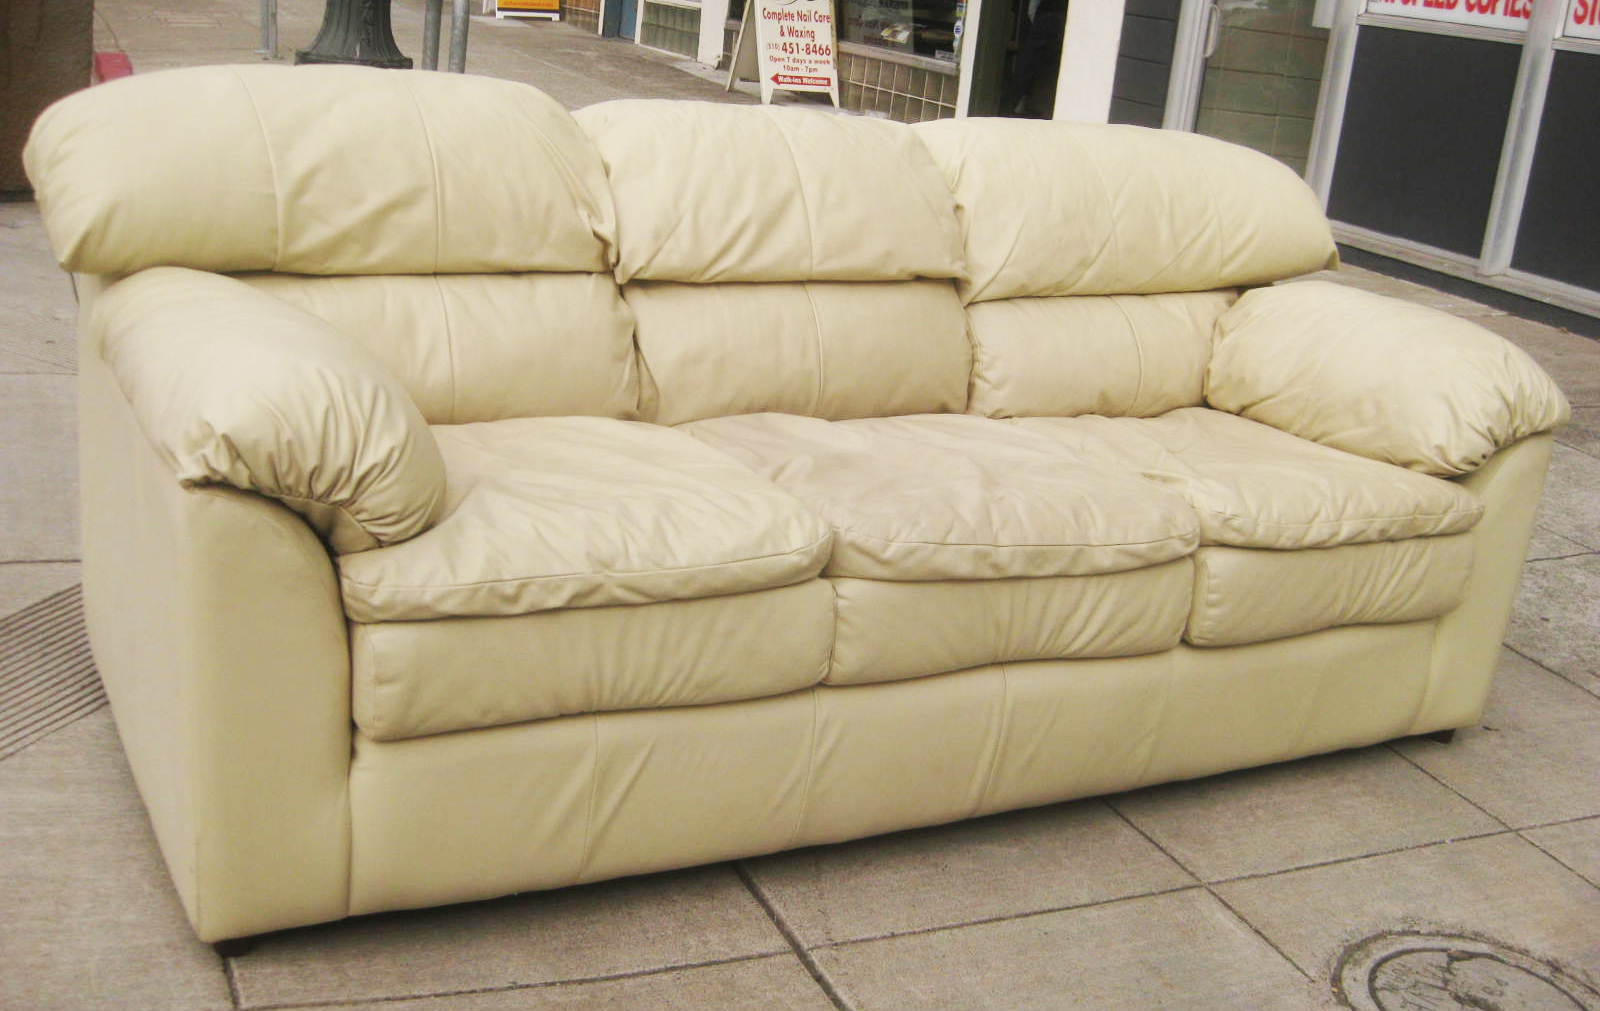 Uhuru Furniture Collectibles Sold Beige Leather Sofa